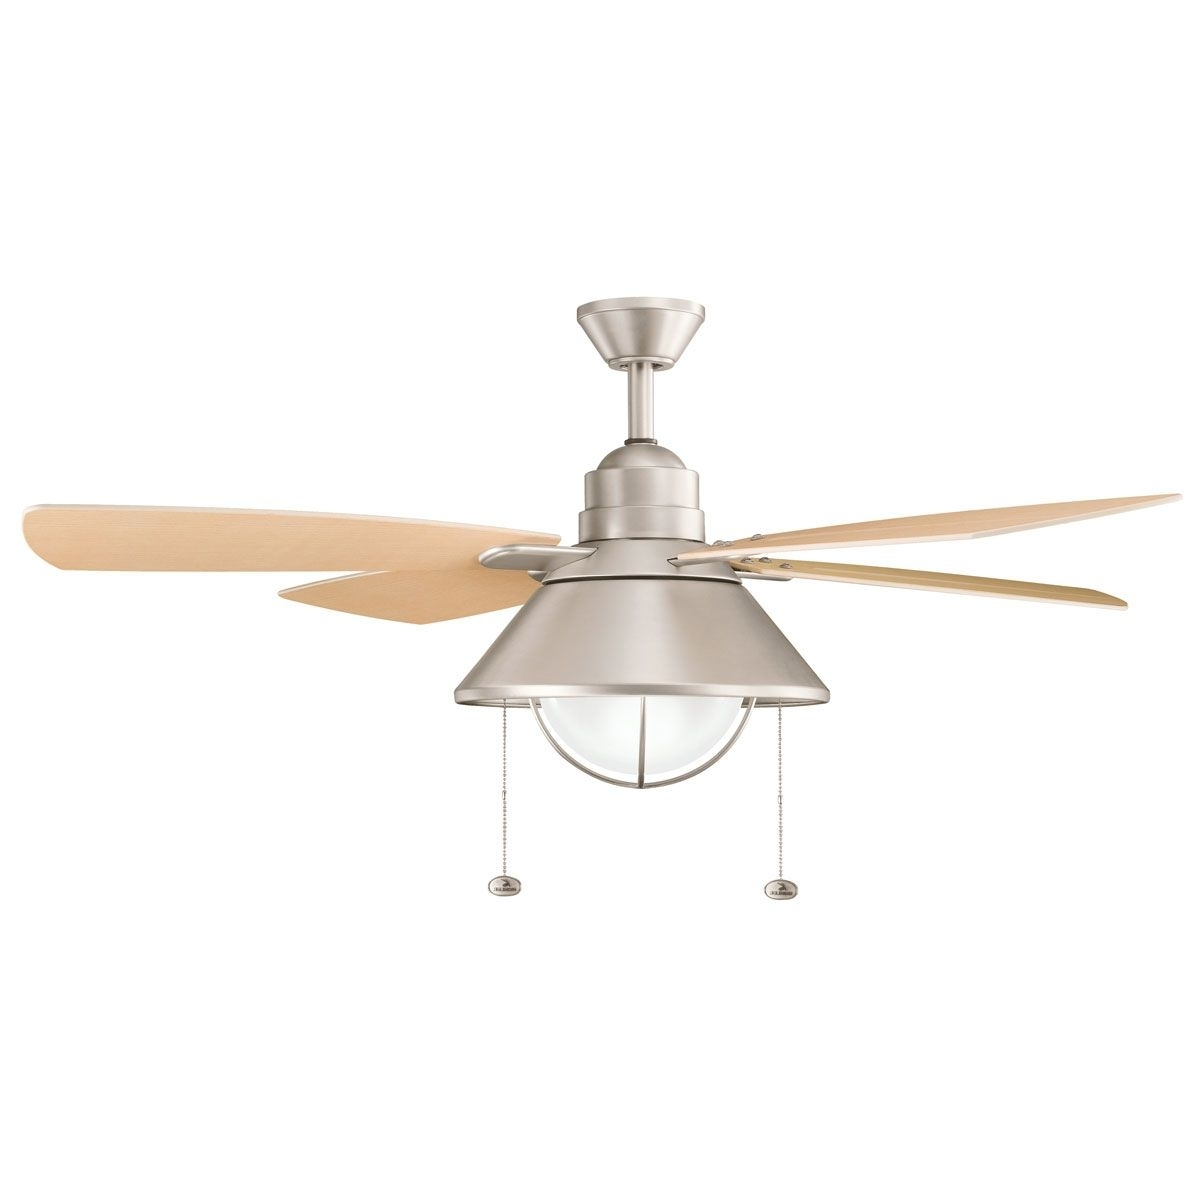 Newest Coastal Outdoor Ceiling Fans Pertaining To Kichler Fans Seaside Ceiling Fan In Brushed Nickel (View 16 of 20)